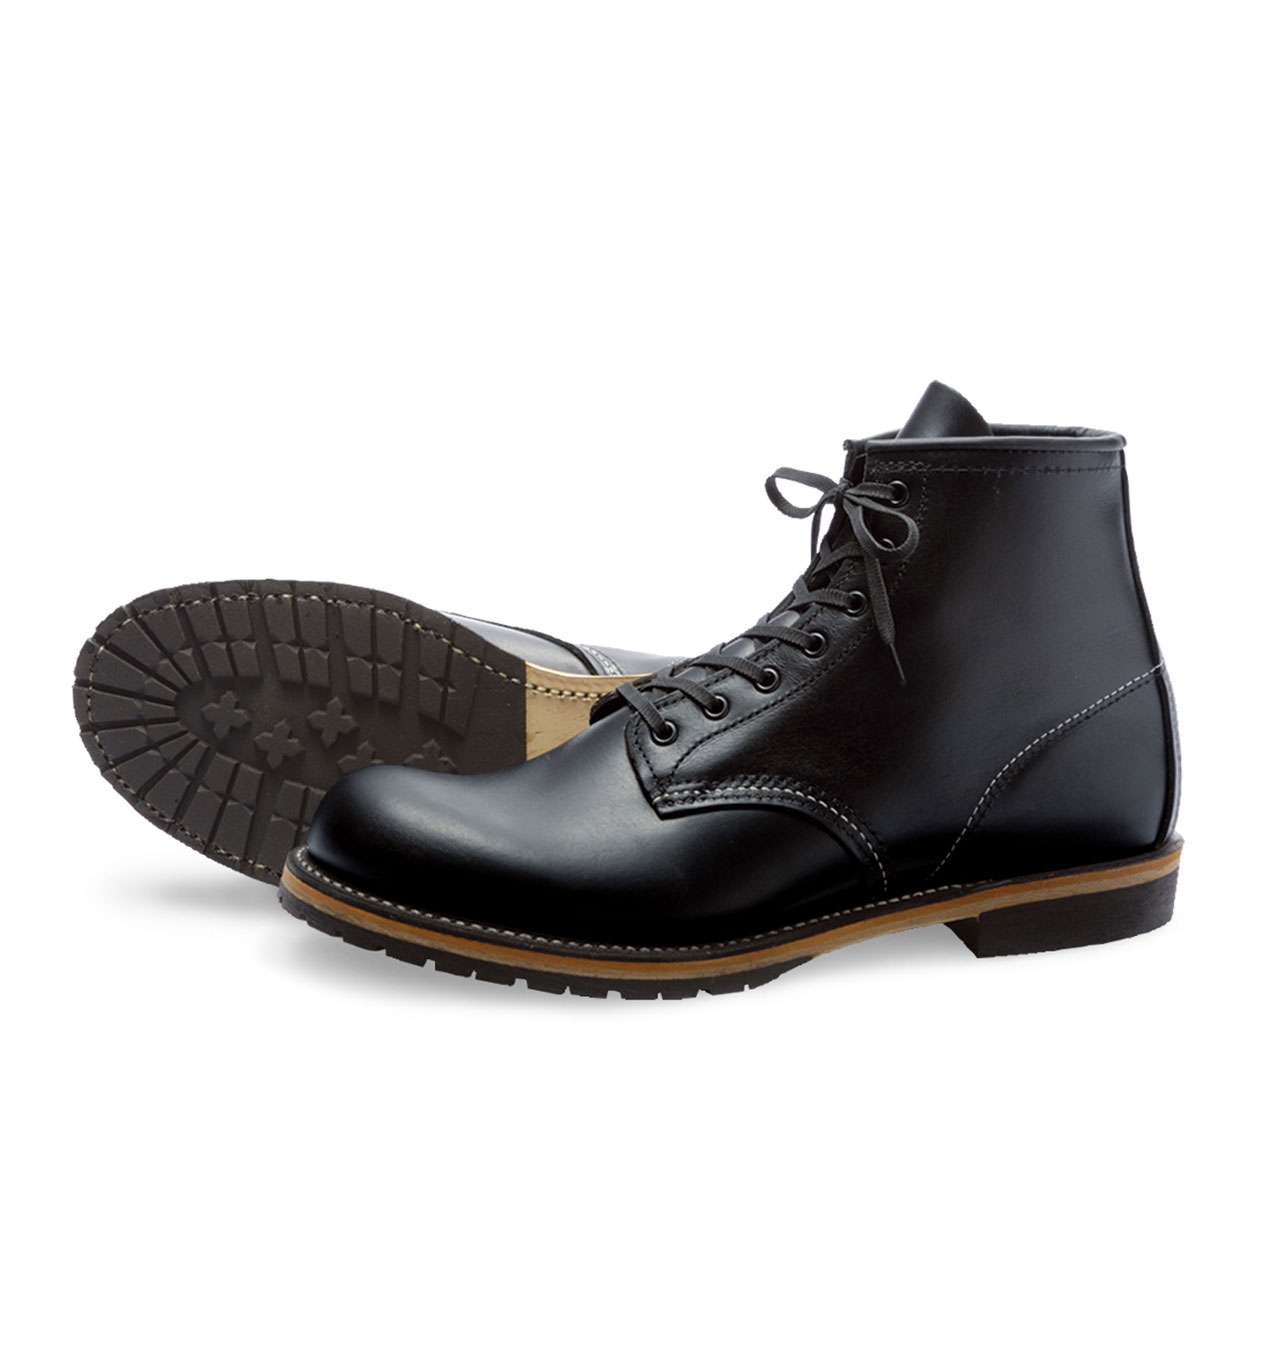 Red Wing Shoes 9014 Beckman - Black Featherstone